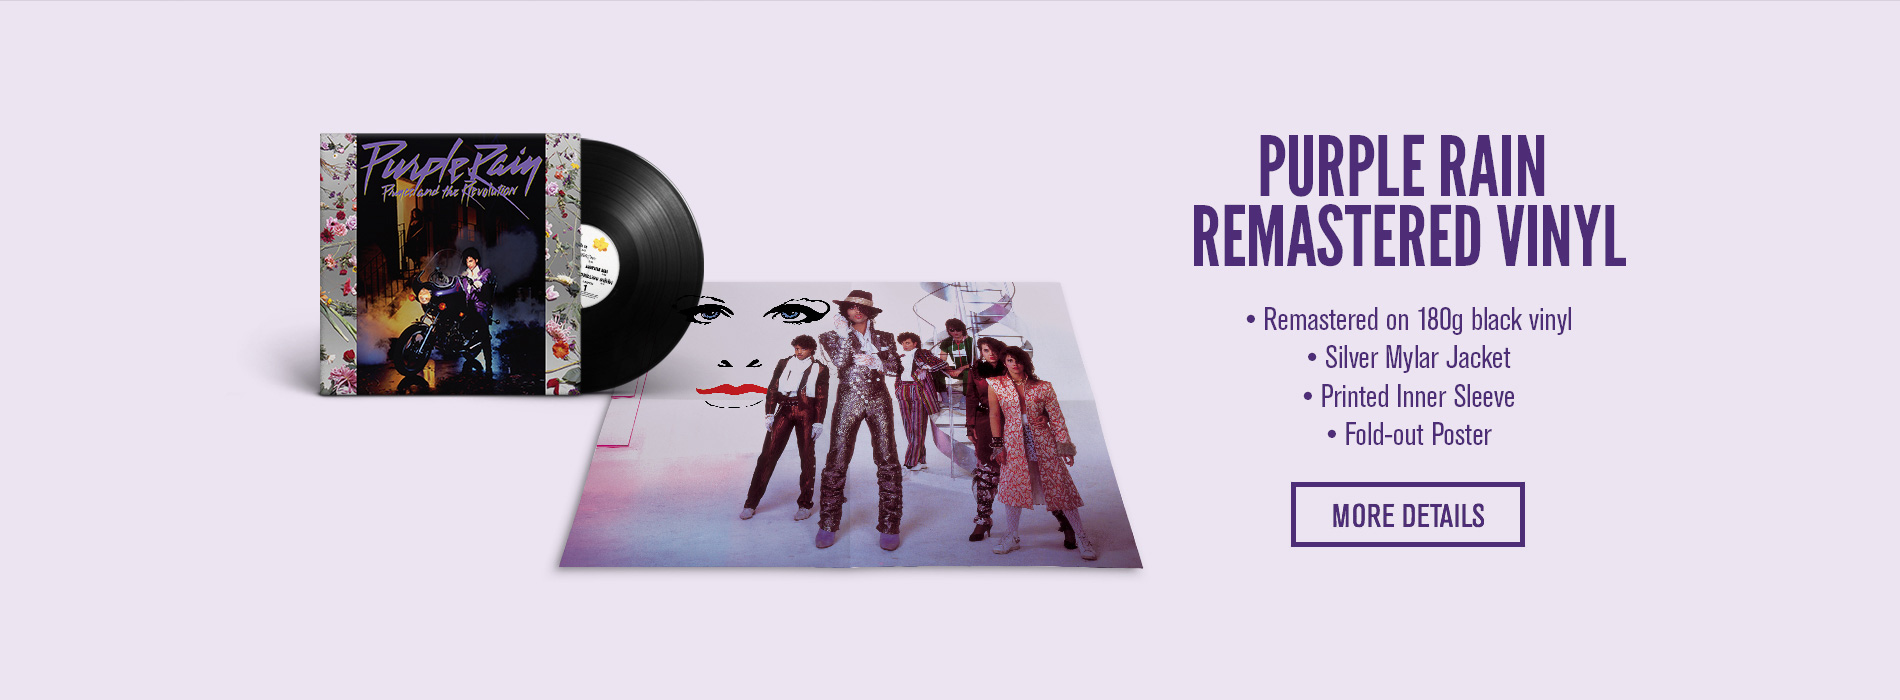 Purple Rain Remastered Vinyl